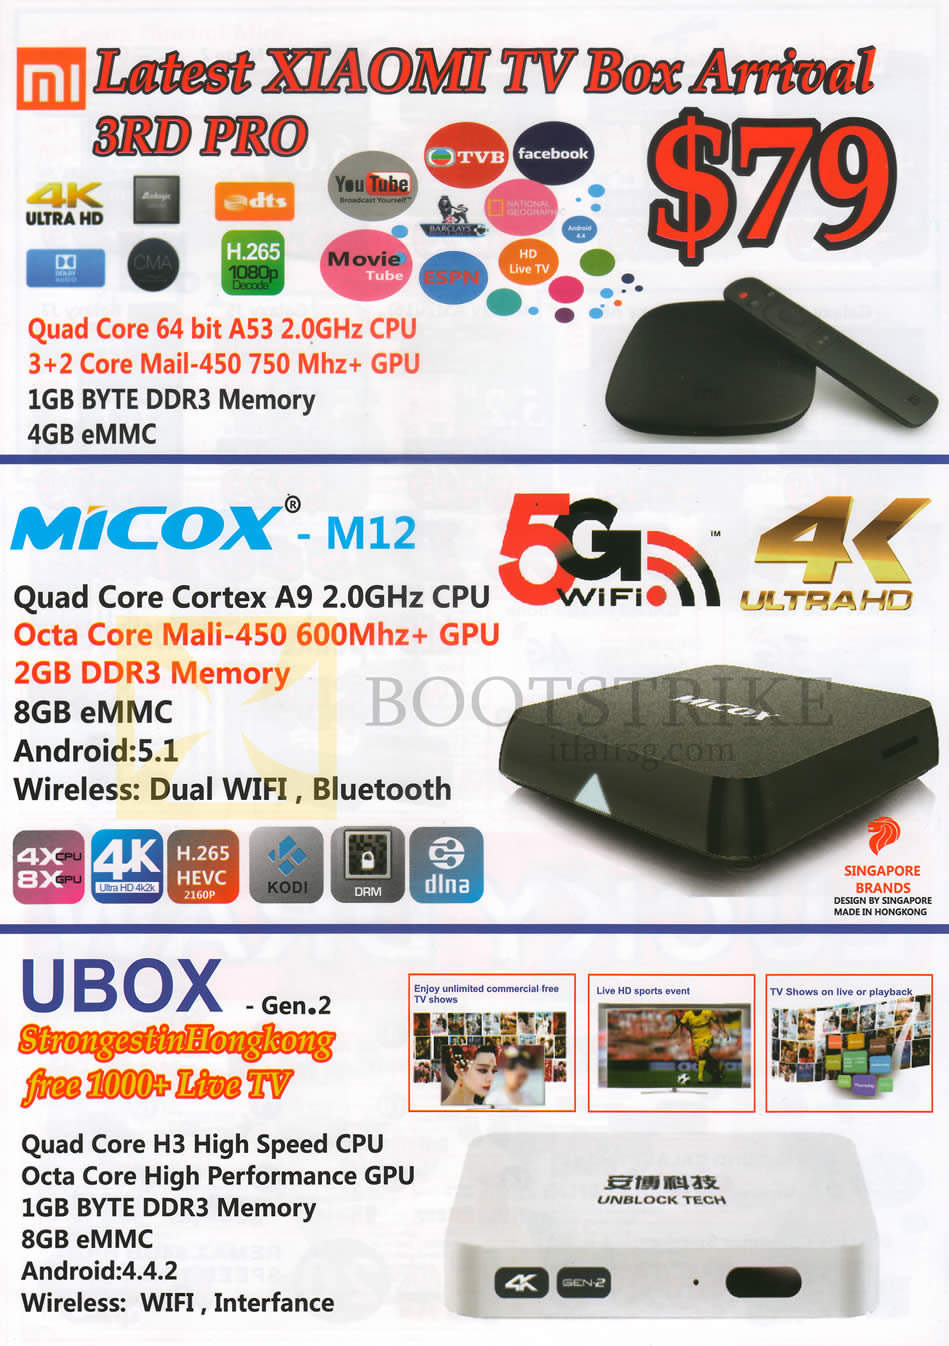 PC SHOW 2016 price list image brochure of SGVideoPro Xiaomi TV Box, Micox, Ubox 3rd Pro, M12, Gen